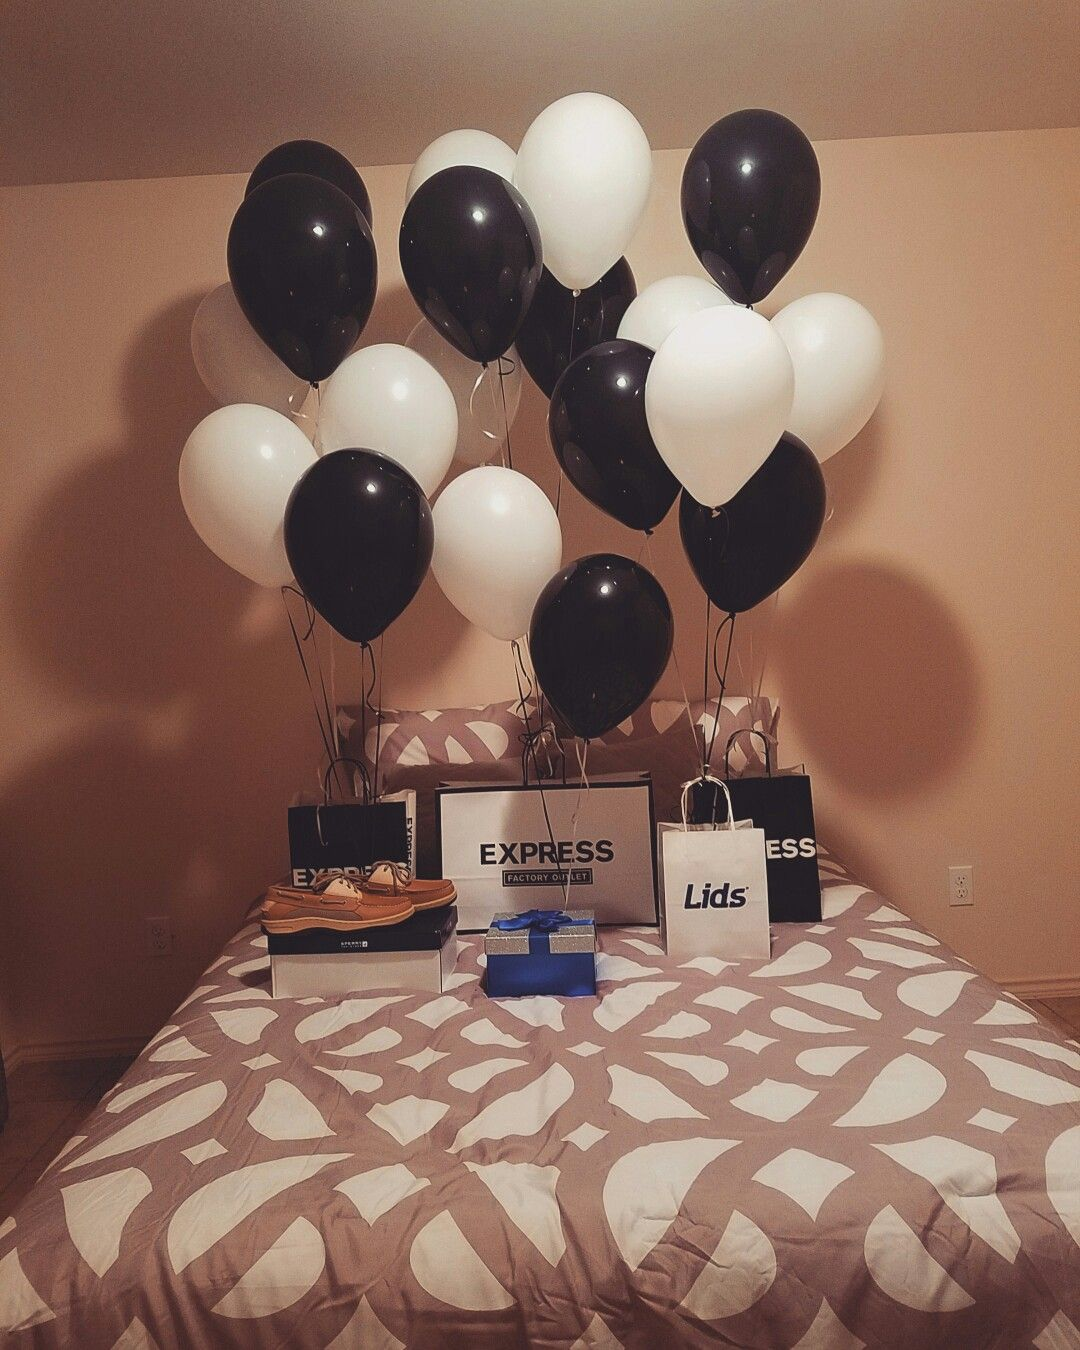 Cumpleanos de mi esposo bedroom surprise for him balloons also best ts images in  ideas crafts rh pinterest